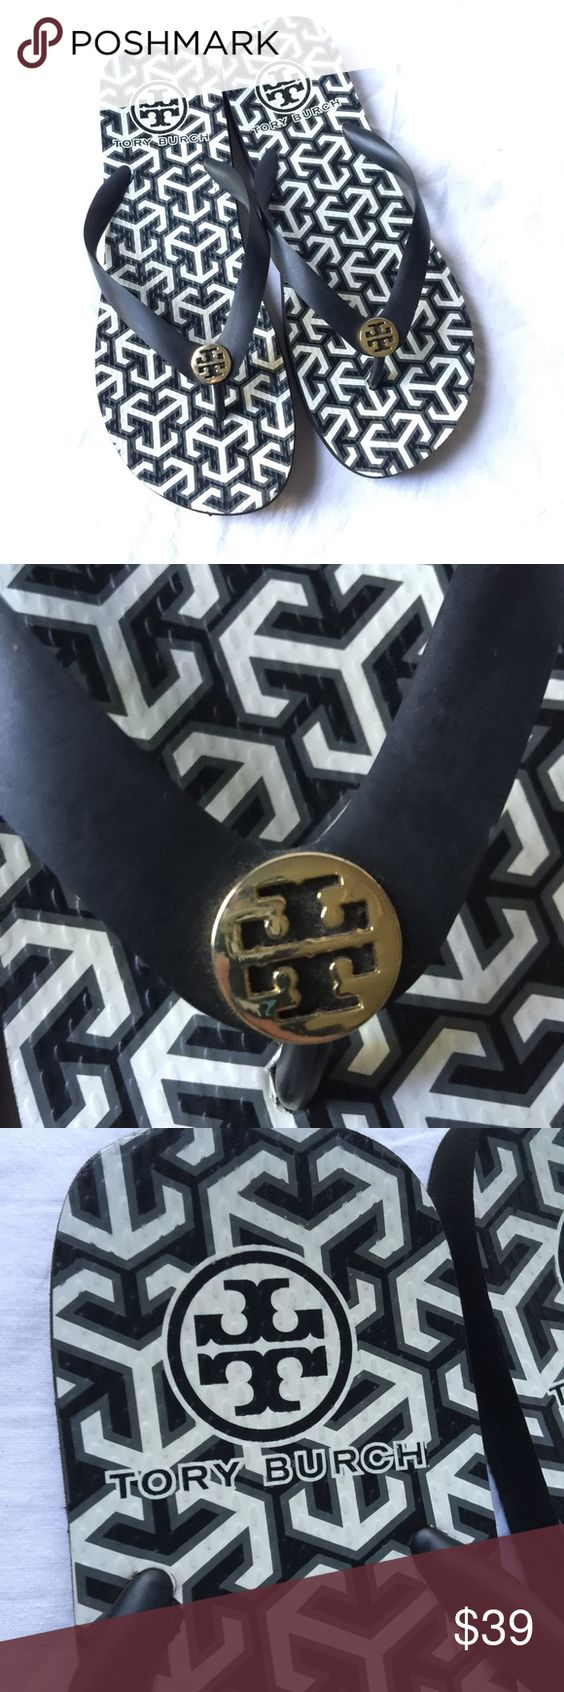 Tory Burch Black and White Thin Flip Flops Lightly worn adorable Tory Burch Thin Flip Flop sandals with jelly thong straps. Large gold Tory insignia, with geometric black and white pattern on insoles. No noticeable damage, minor sole wear. Authentic. Size 9. Tory Burch Shoes Sandals